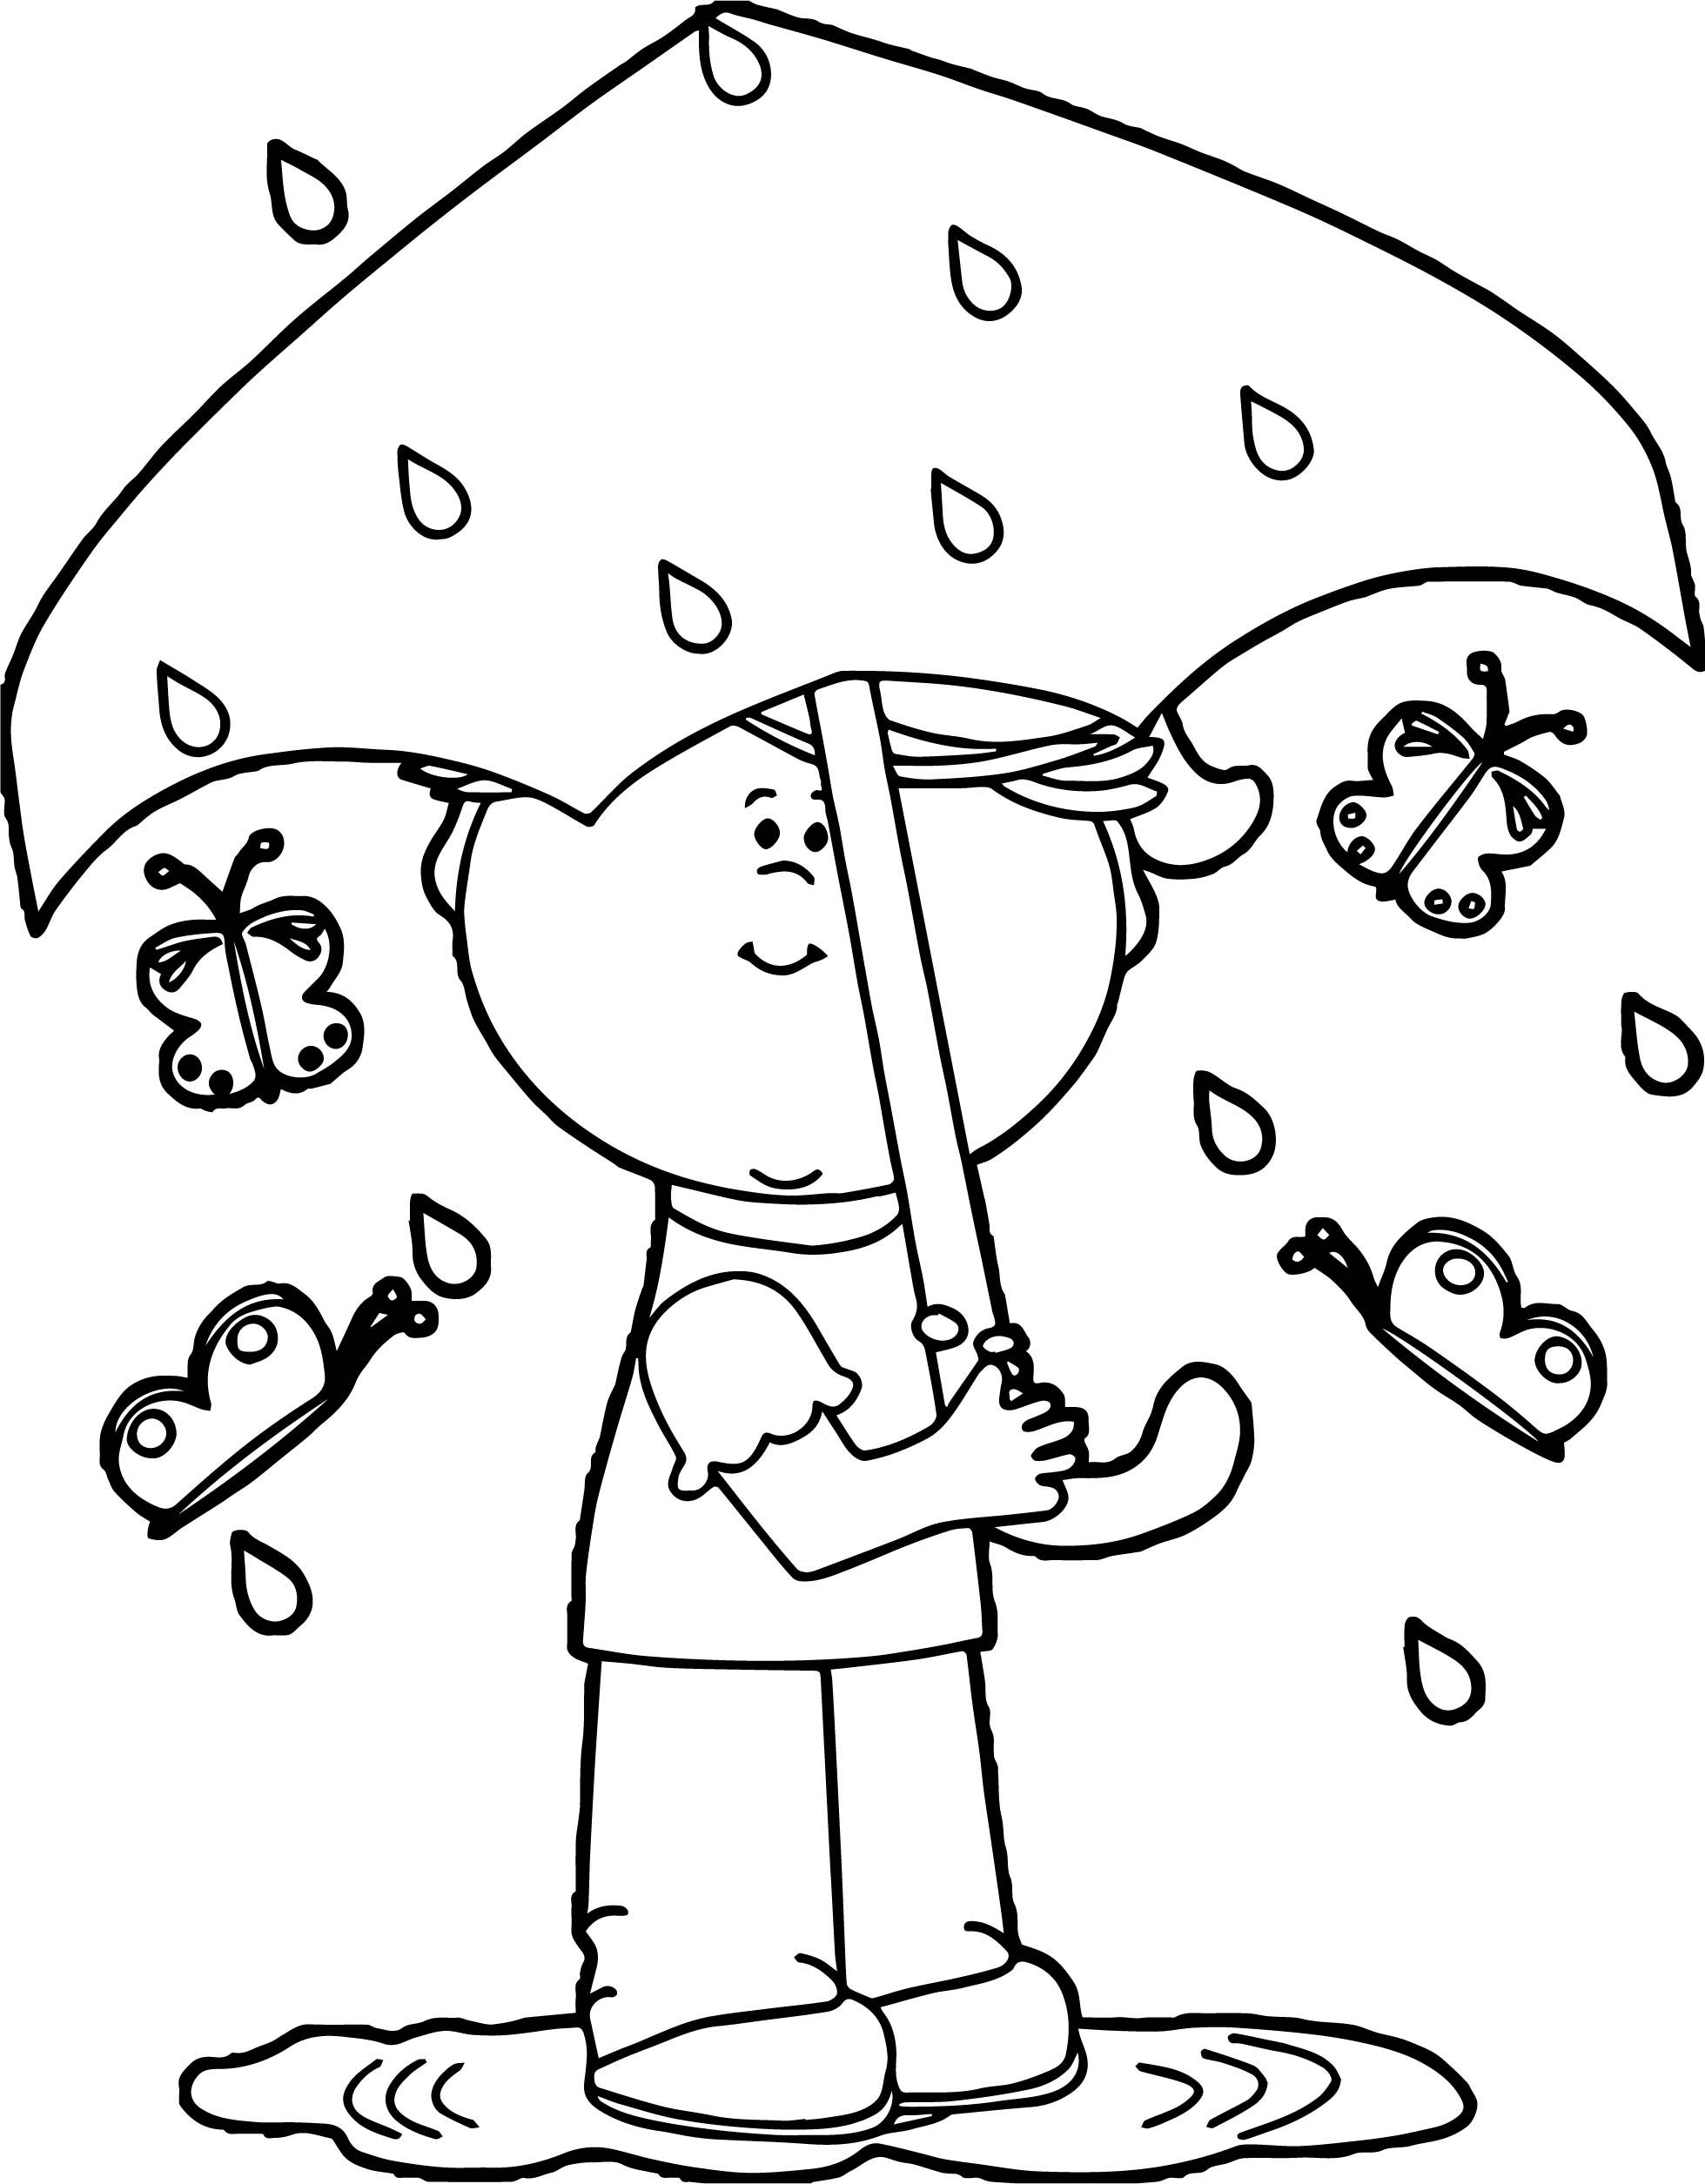 Rainy Day Coloring Pages Collection For Kids Free Coloring Sheets Spring Coloring Pages Free Coloring Pictures Rainy Day Drawing